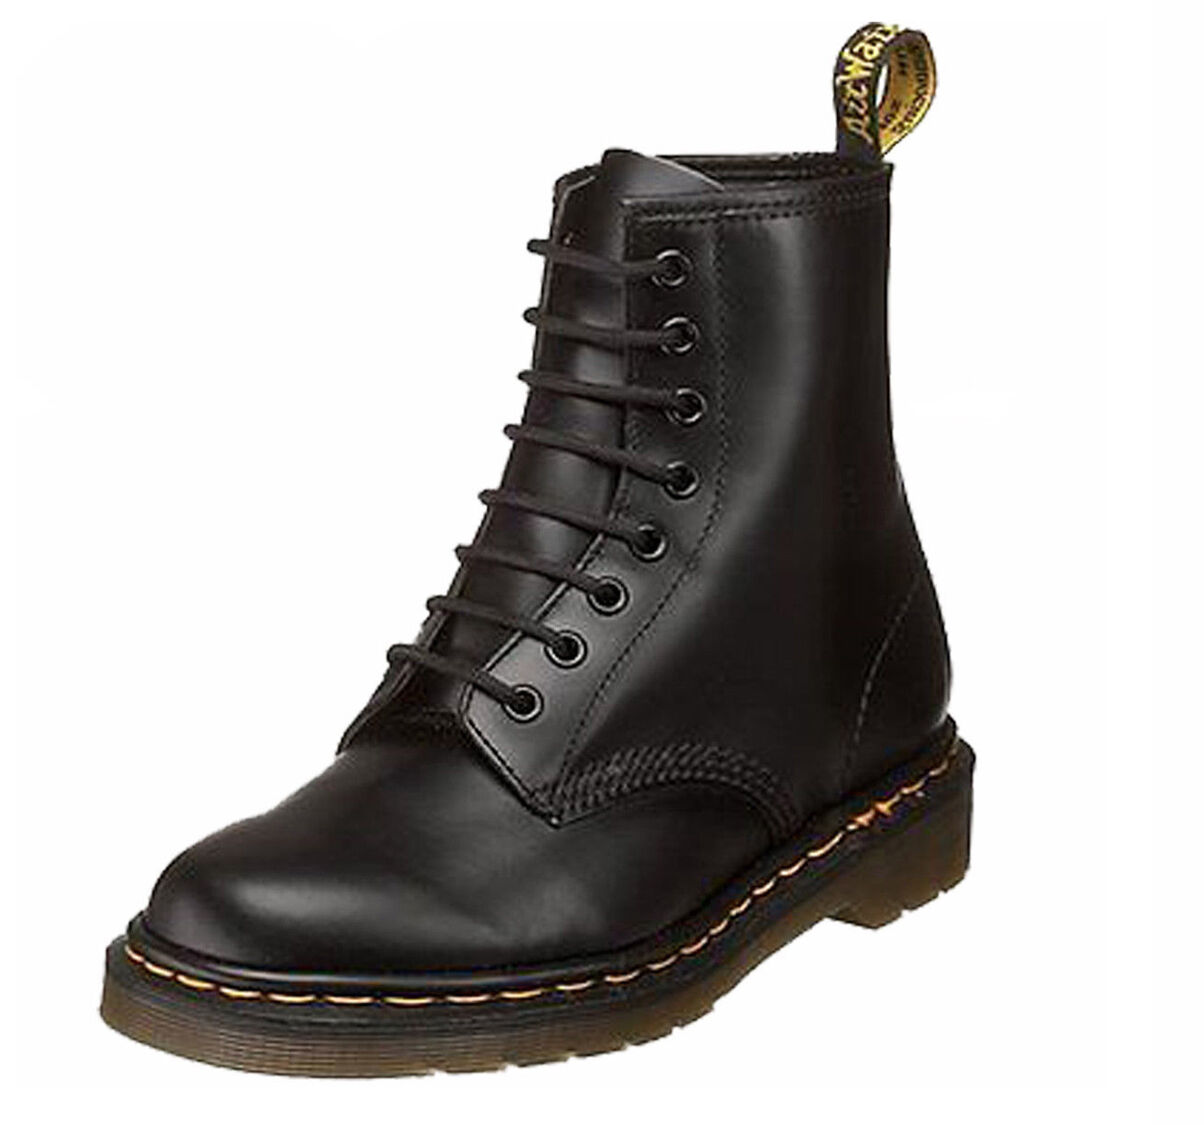 Dr. Martens 1460 Black Leather 8 Eye Classic Smooth Leather Black Boots with Air Wair Soleie a2dc4c